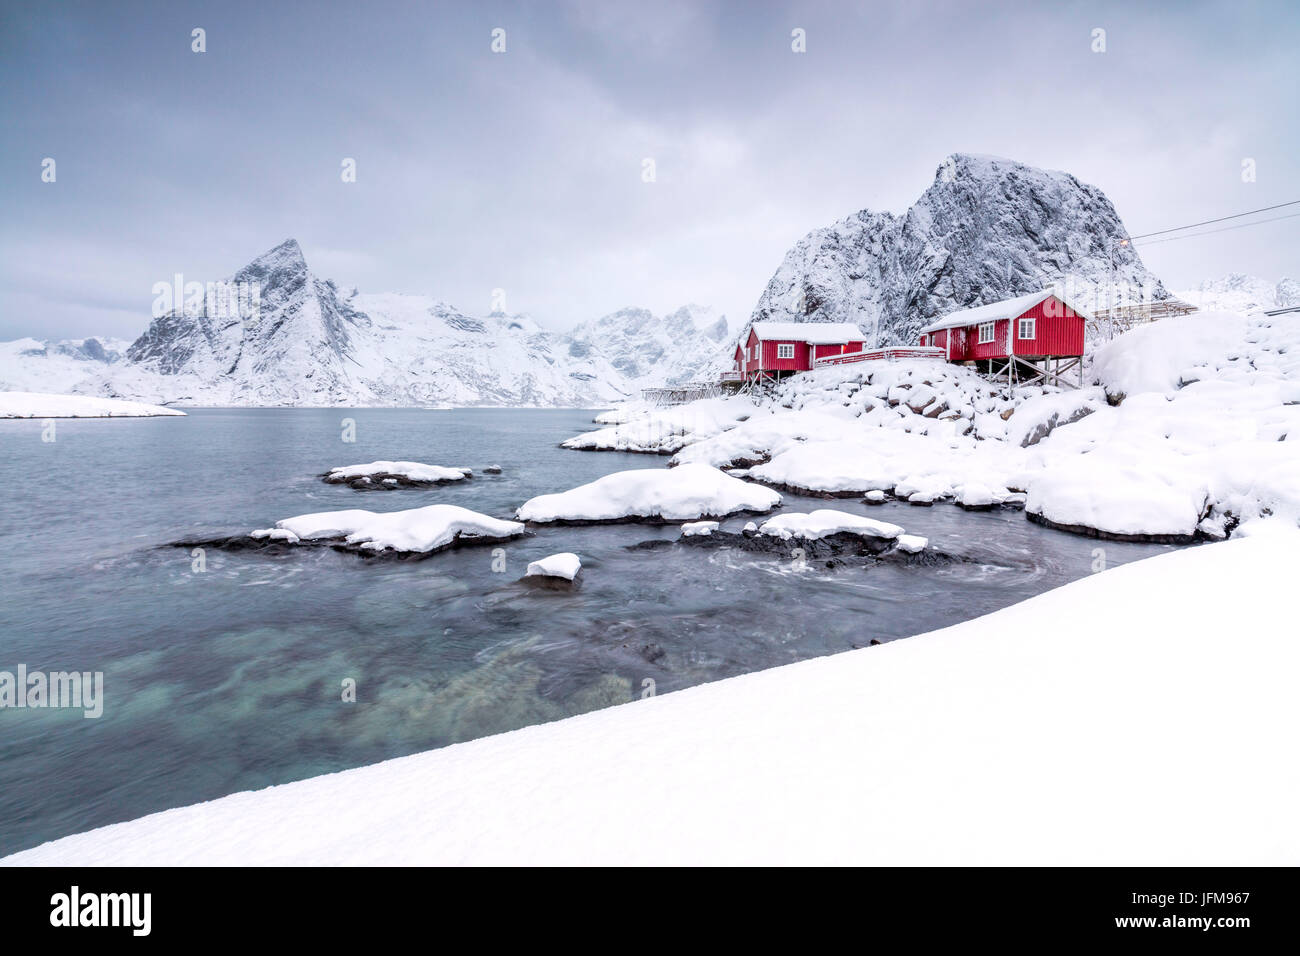 The snowy peaks and frozen sea frame the typical fisherman houses called Rorbu Hamnøy Lofoten Islands Northern - Stock Image